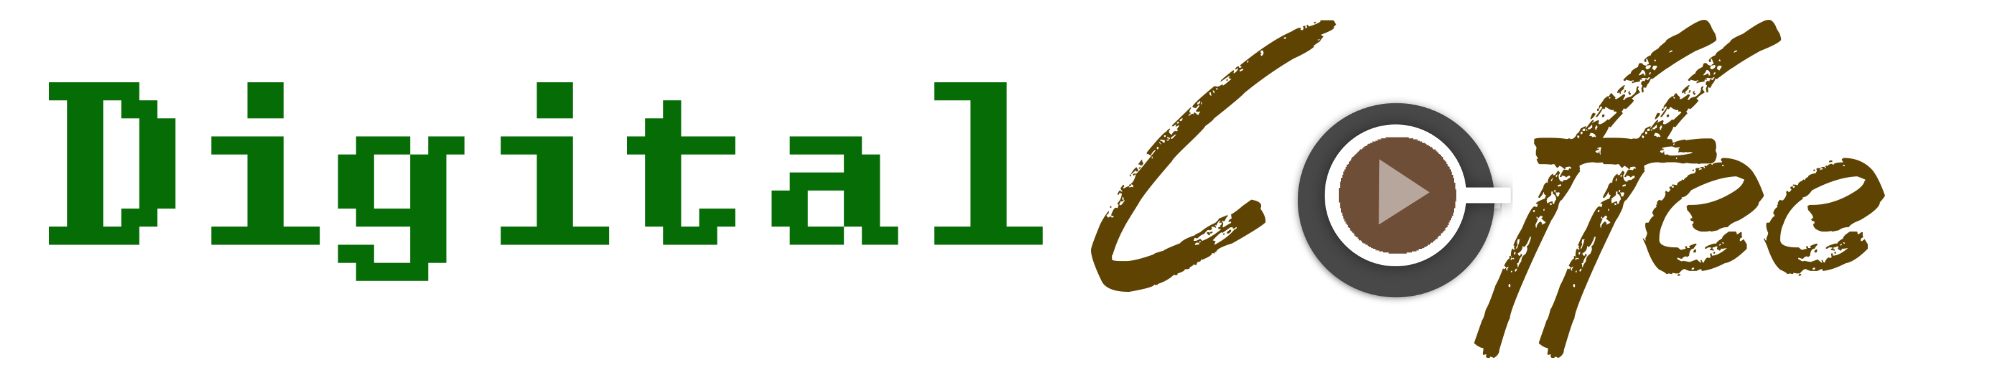 Digital Coffee Logo